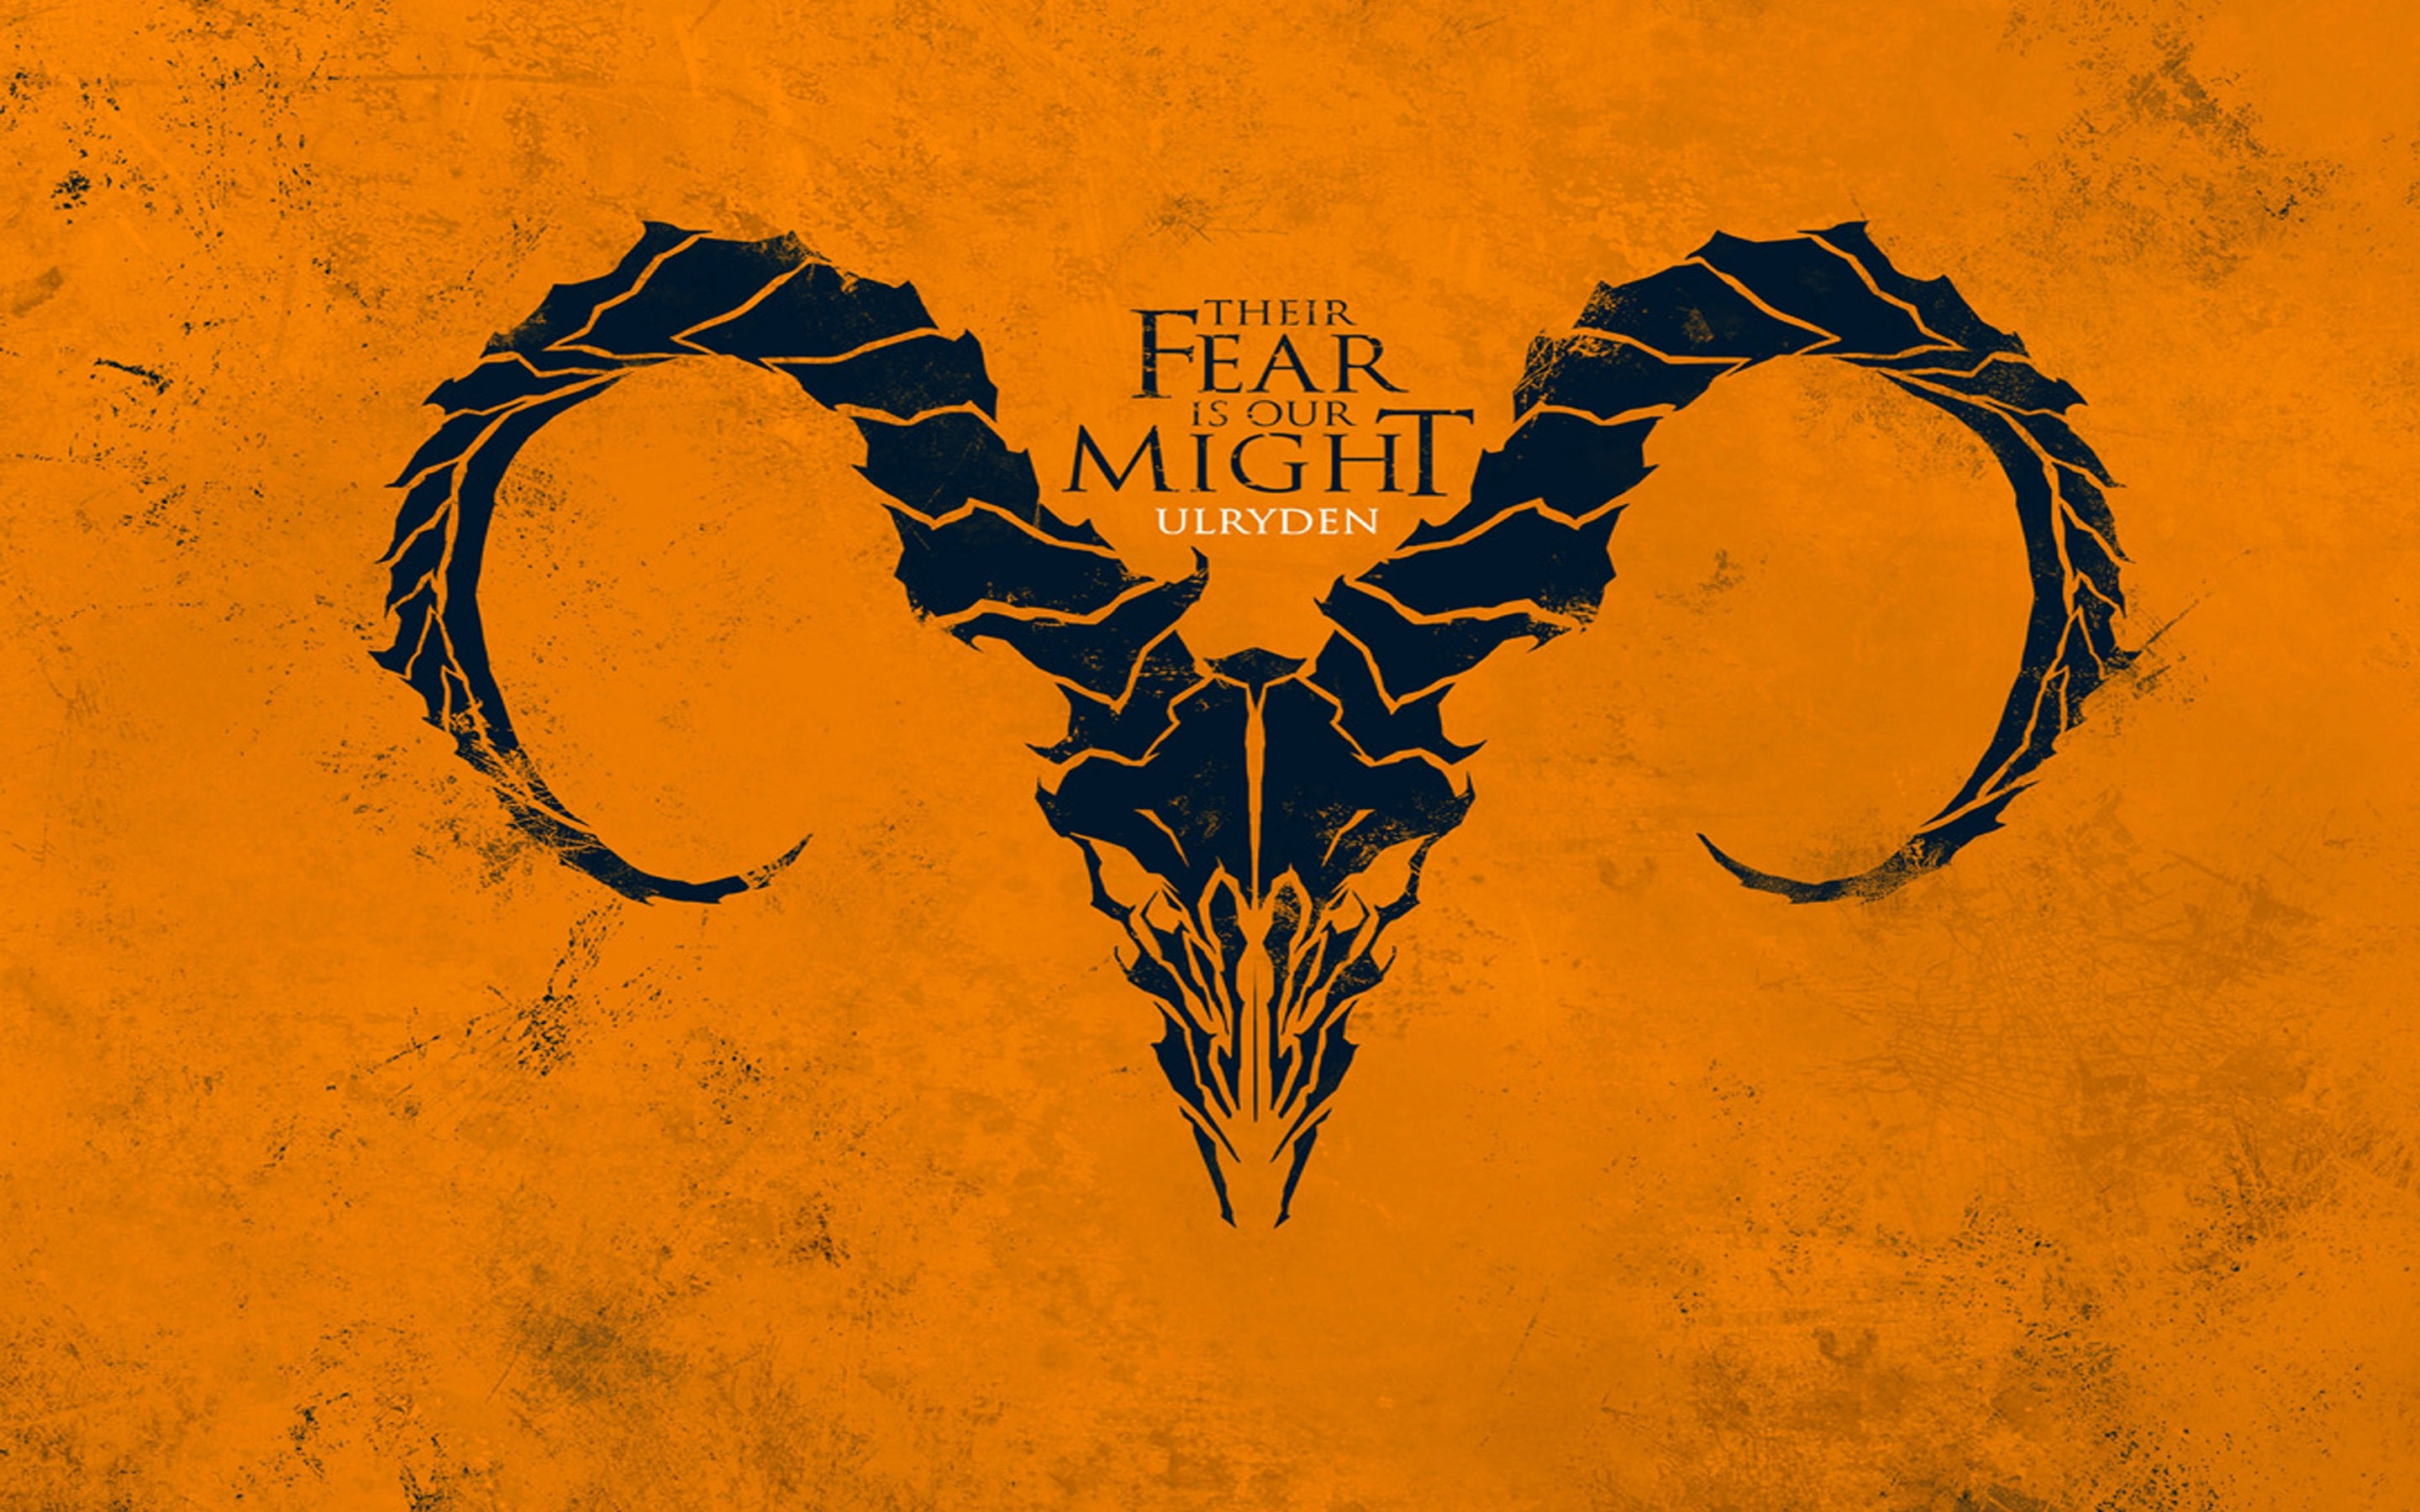 Game Of Thrones PC wallpapers Game Of Thrones Exitoc